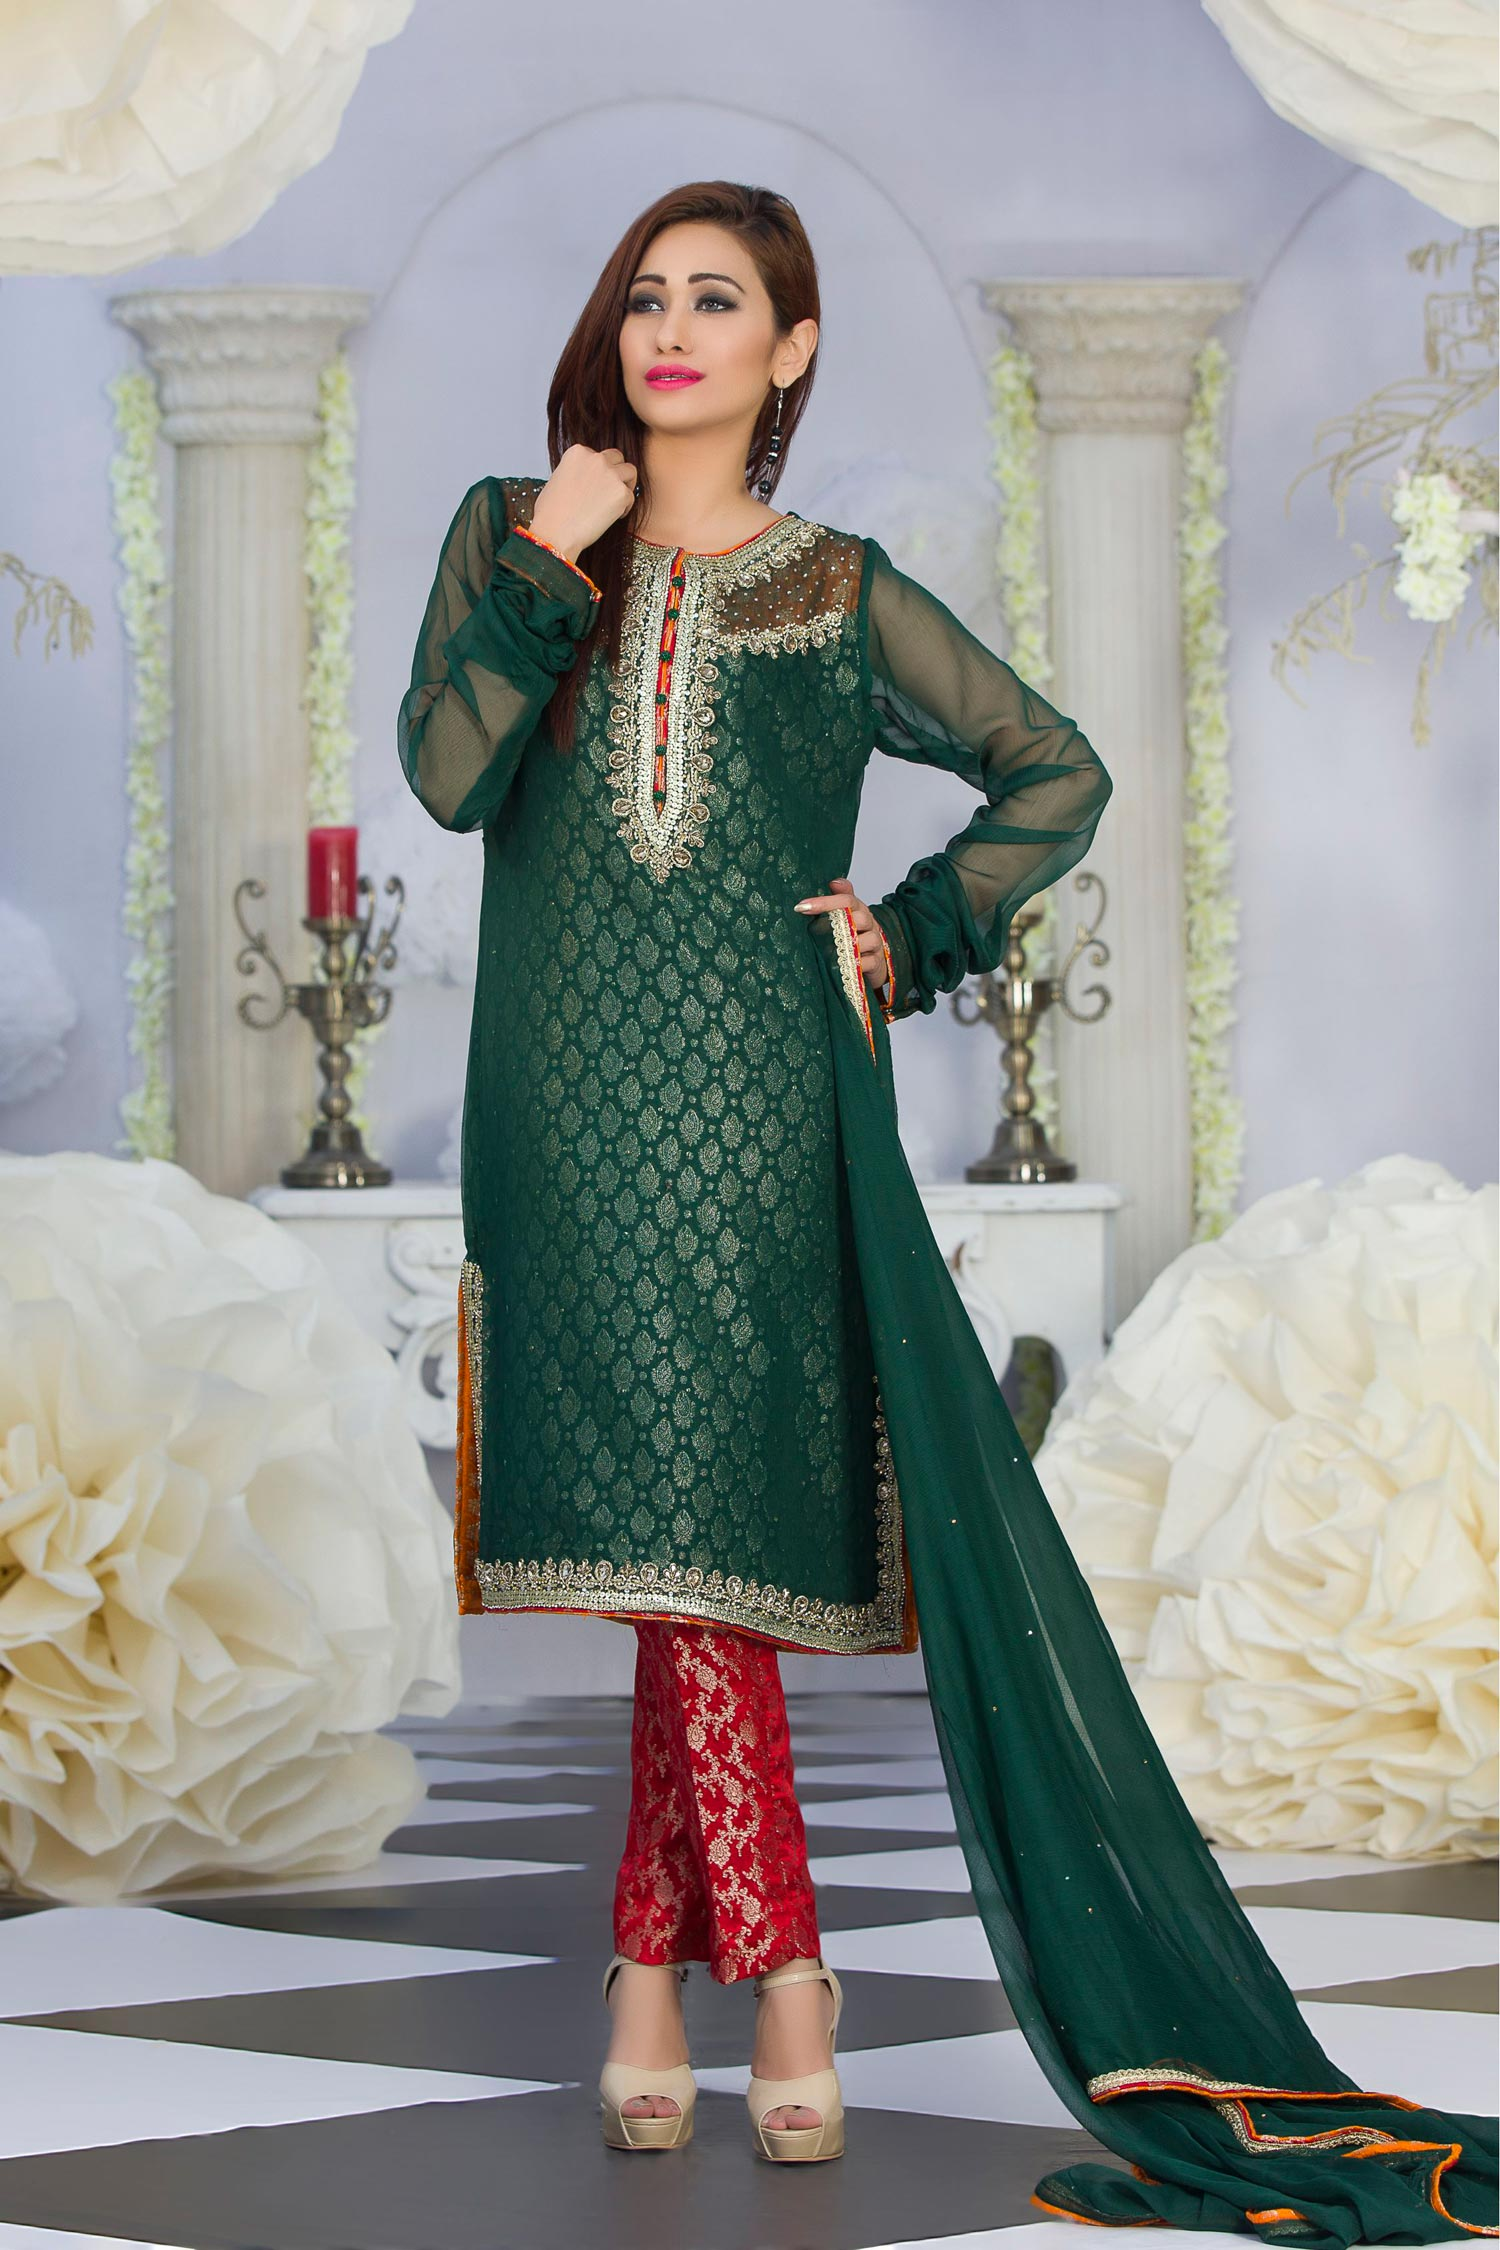 Exclusive Green  Red Color Latest Design Party Dress  Exclusiveinncom  Page 1